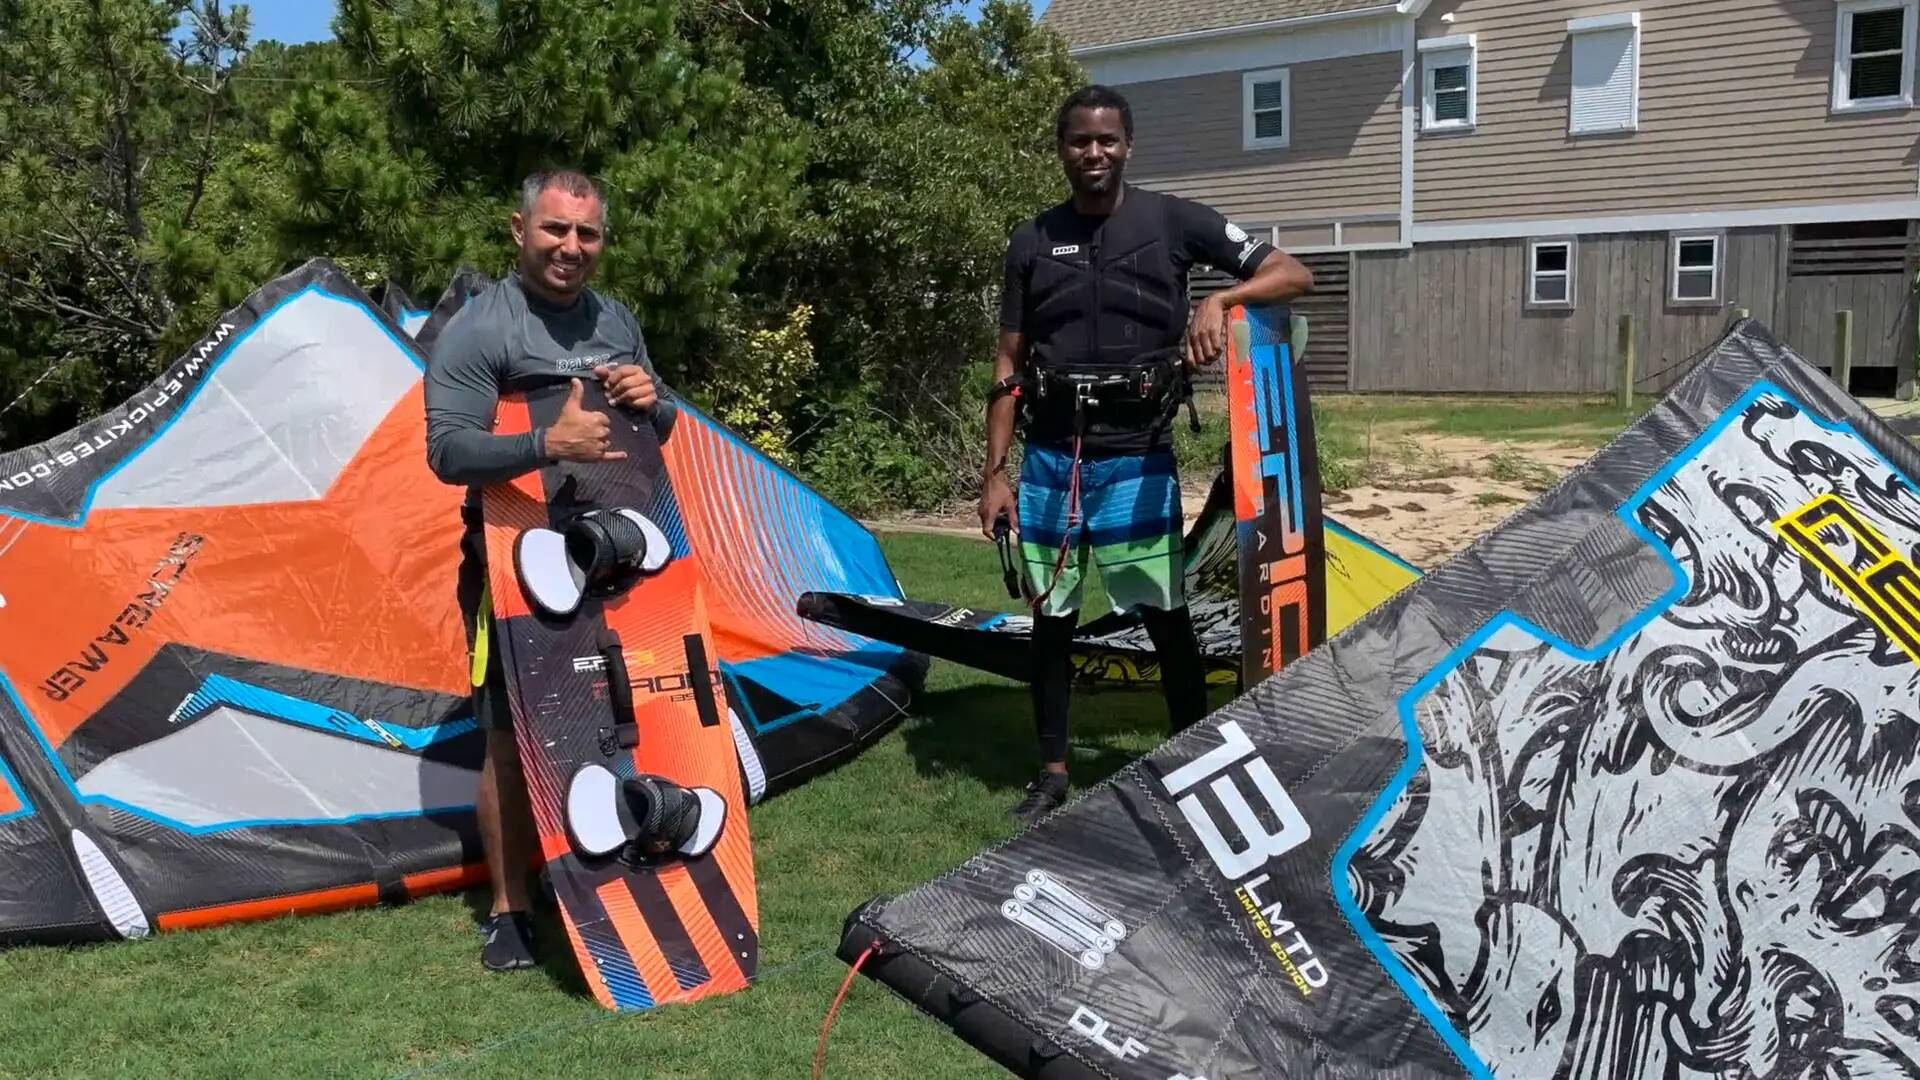 Dimitri Boot Camp with John & Darnel from Guam - with Epic Kites Kiteboarding